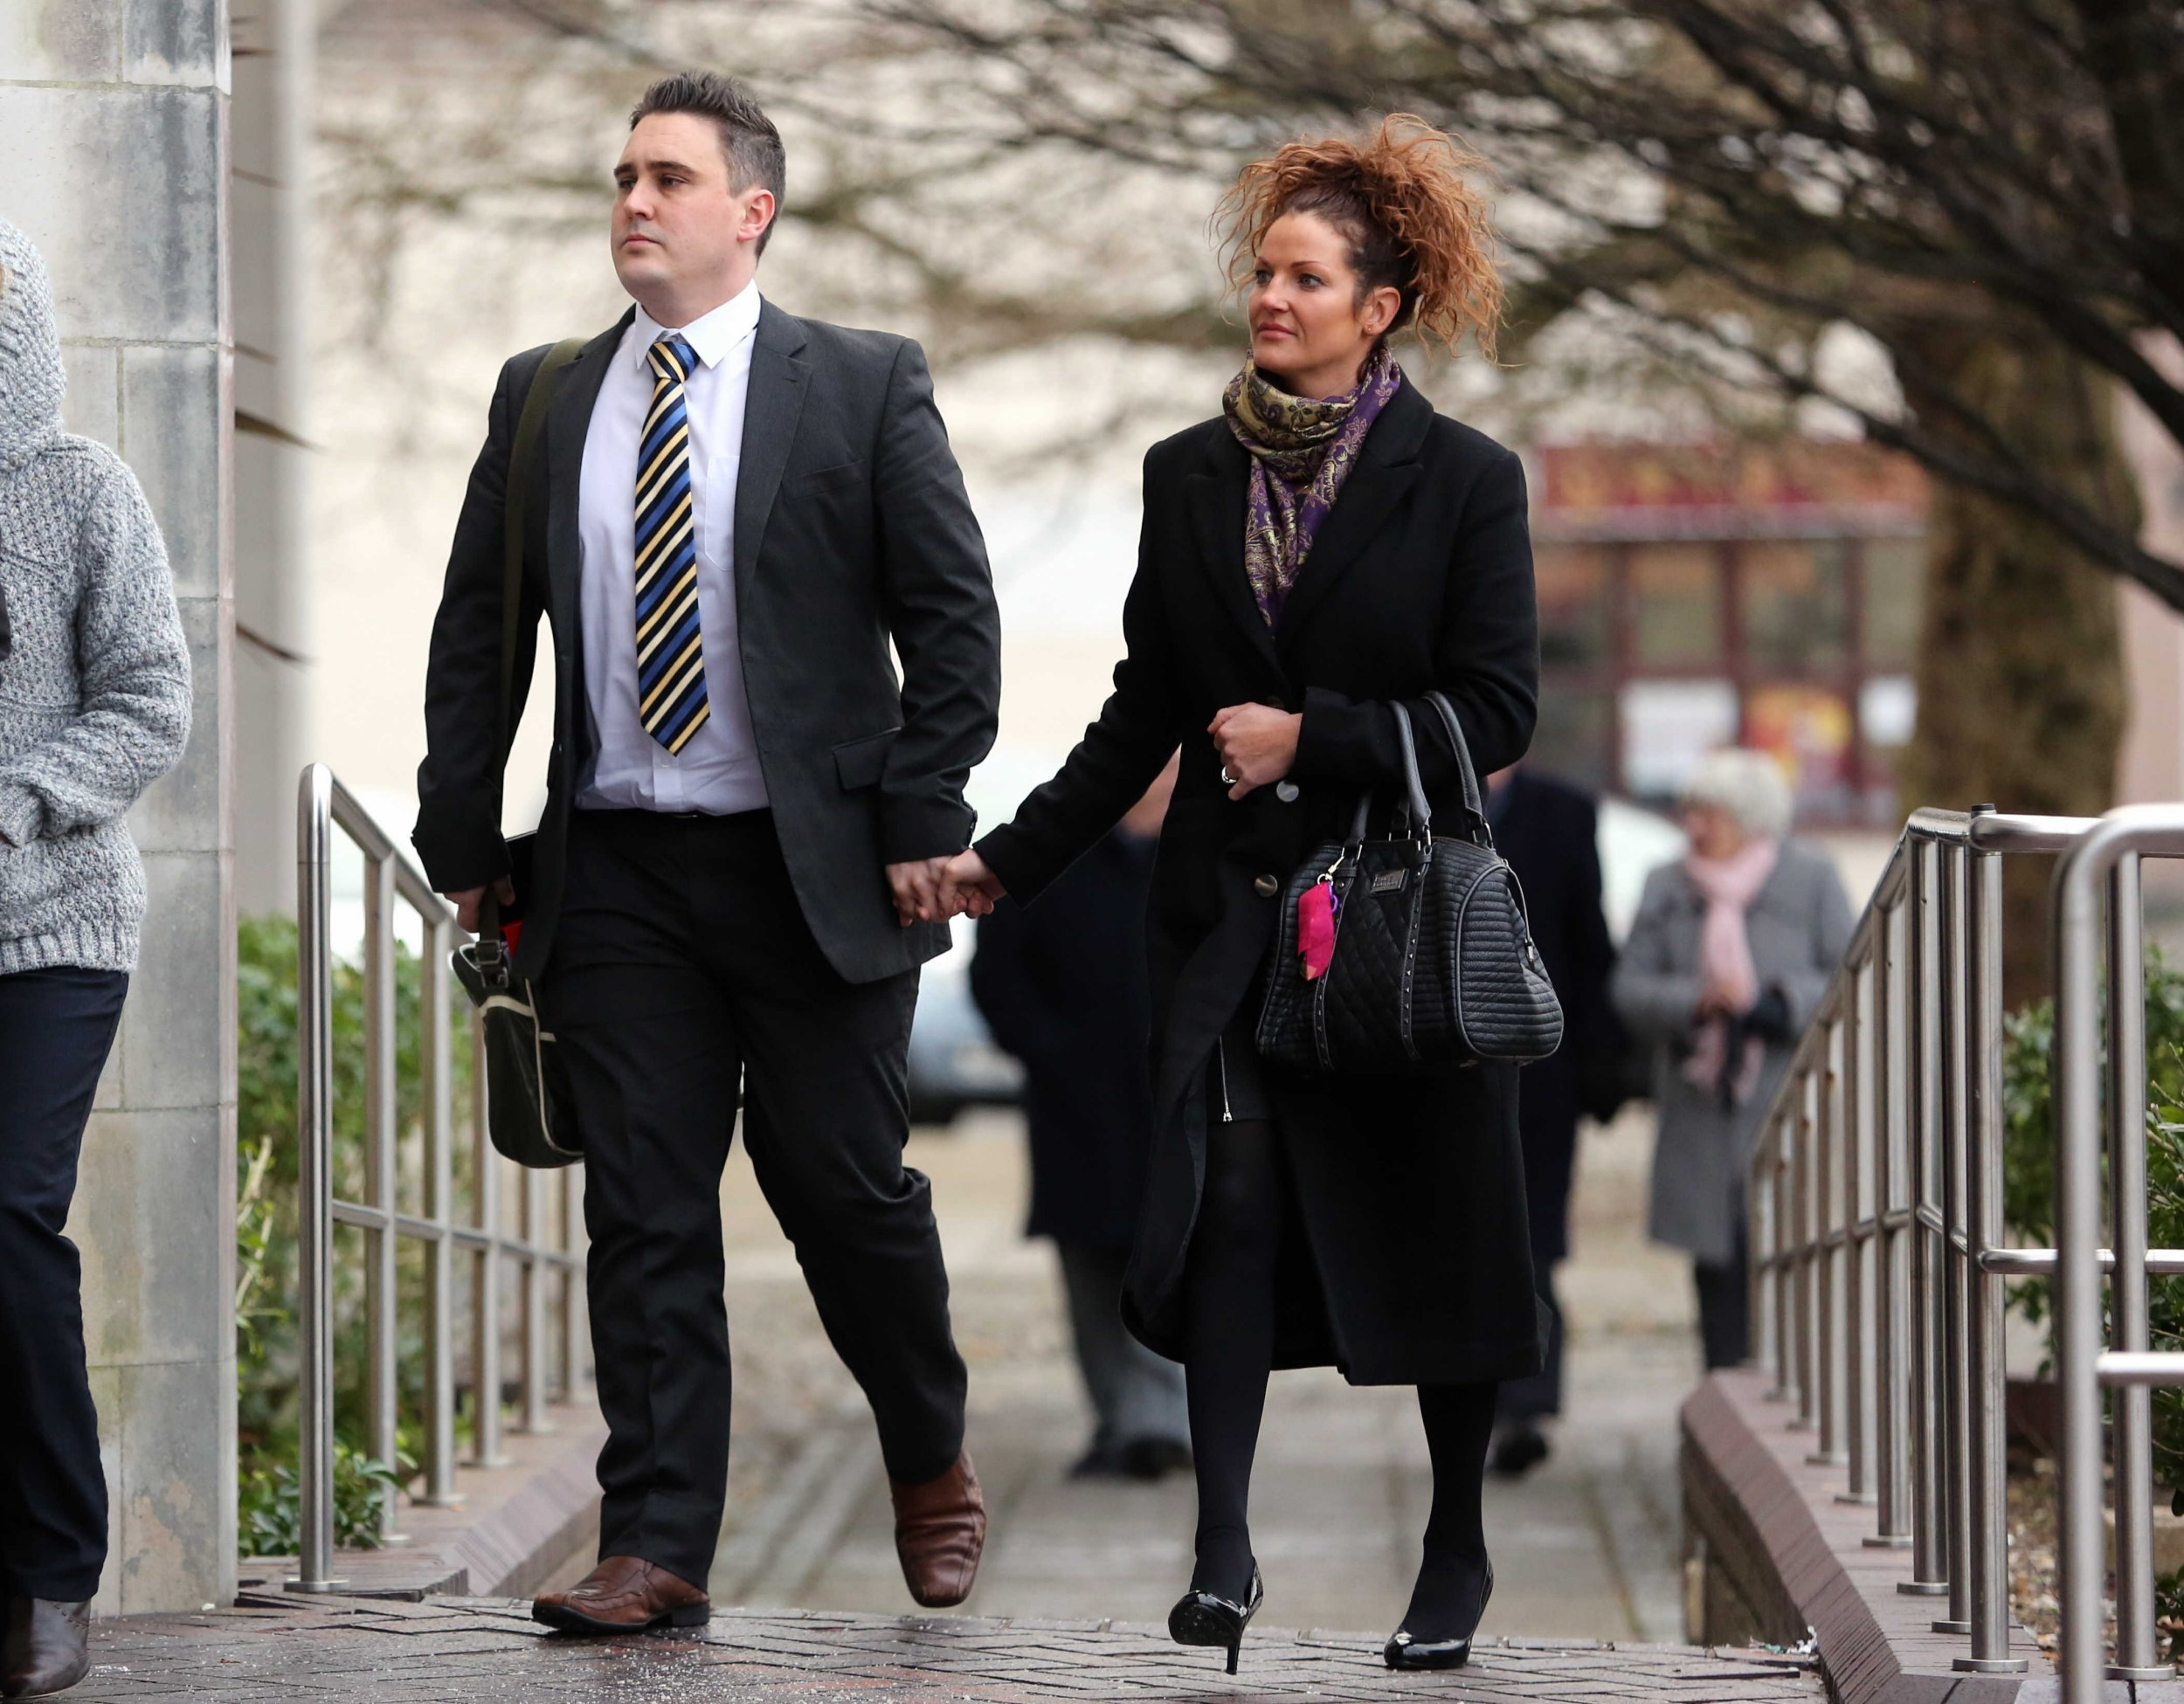 Pictured: School teacher Jonathan Norbury (L) with his wife arriving at Swansea Crown Court. STOCK PICTURE Re: A ruling is expected today on a ìvalued and conscientiousî primary school teacher who had sexual relationships with three underage girls. An Education Workforce Council fitness to practice committee was told Jonathan Mark Norbury was alleged to have had sexual relationships with three girls between 2006 and 2008 while they were under 16. This included inappropriate text messages, kissing and sexual touching, the hearing was told. The ex-teacher, from Swansea, admitted he had a sex with one girl and had given and received oral sex from another while both were under 18. He also said he had had a sexual relationship with the third girl but only after she had turned 18.